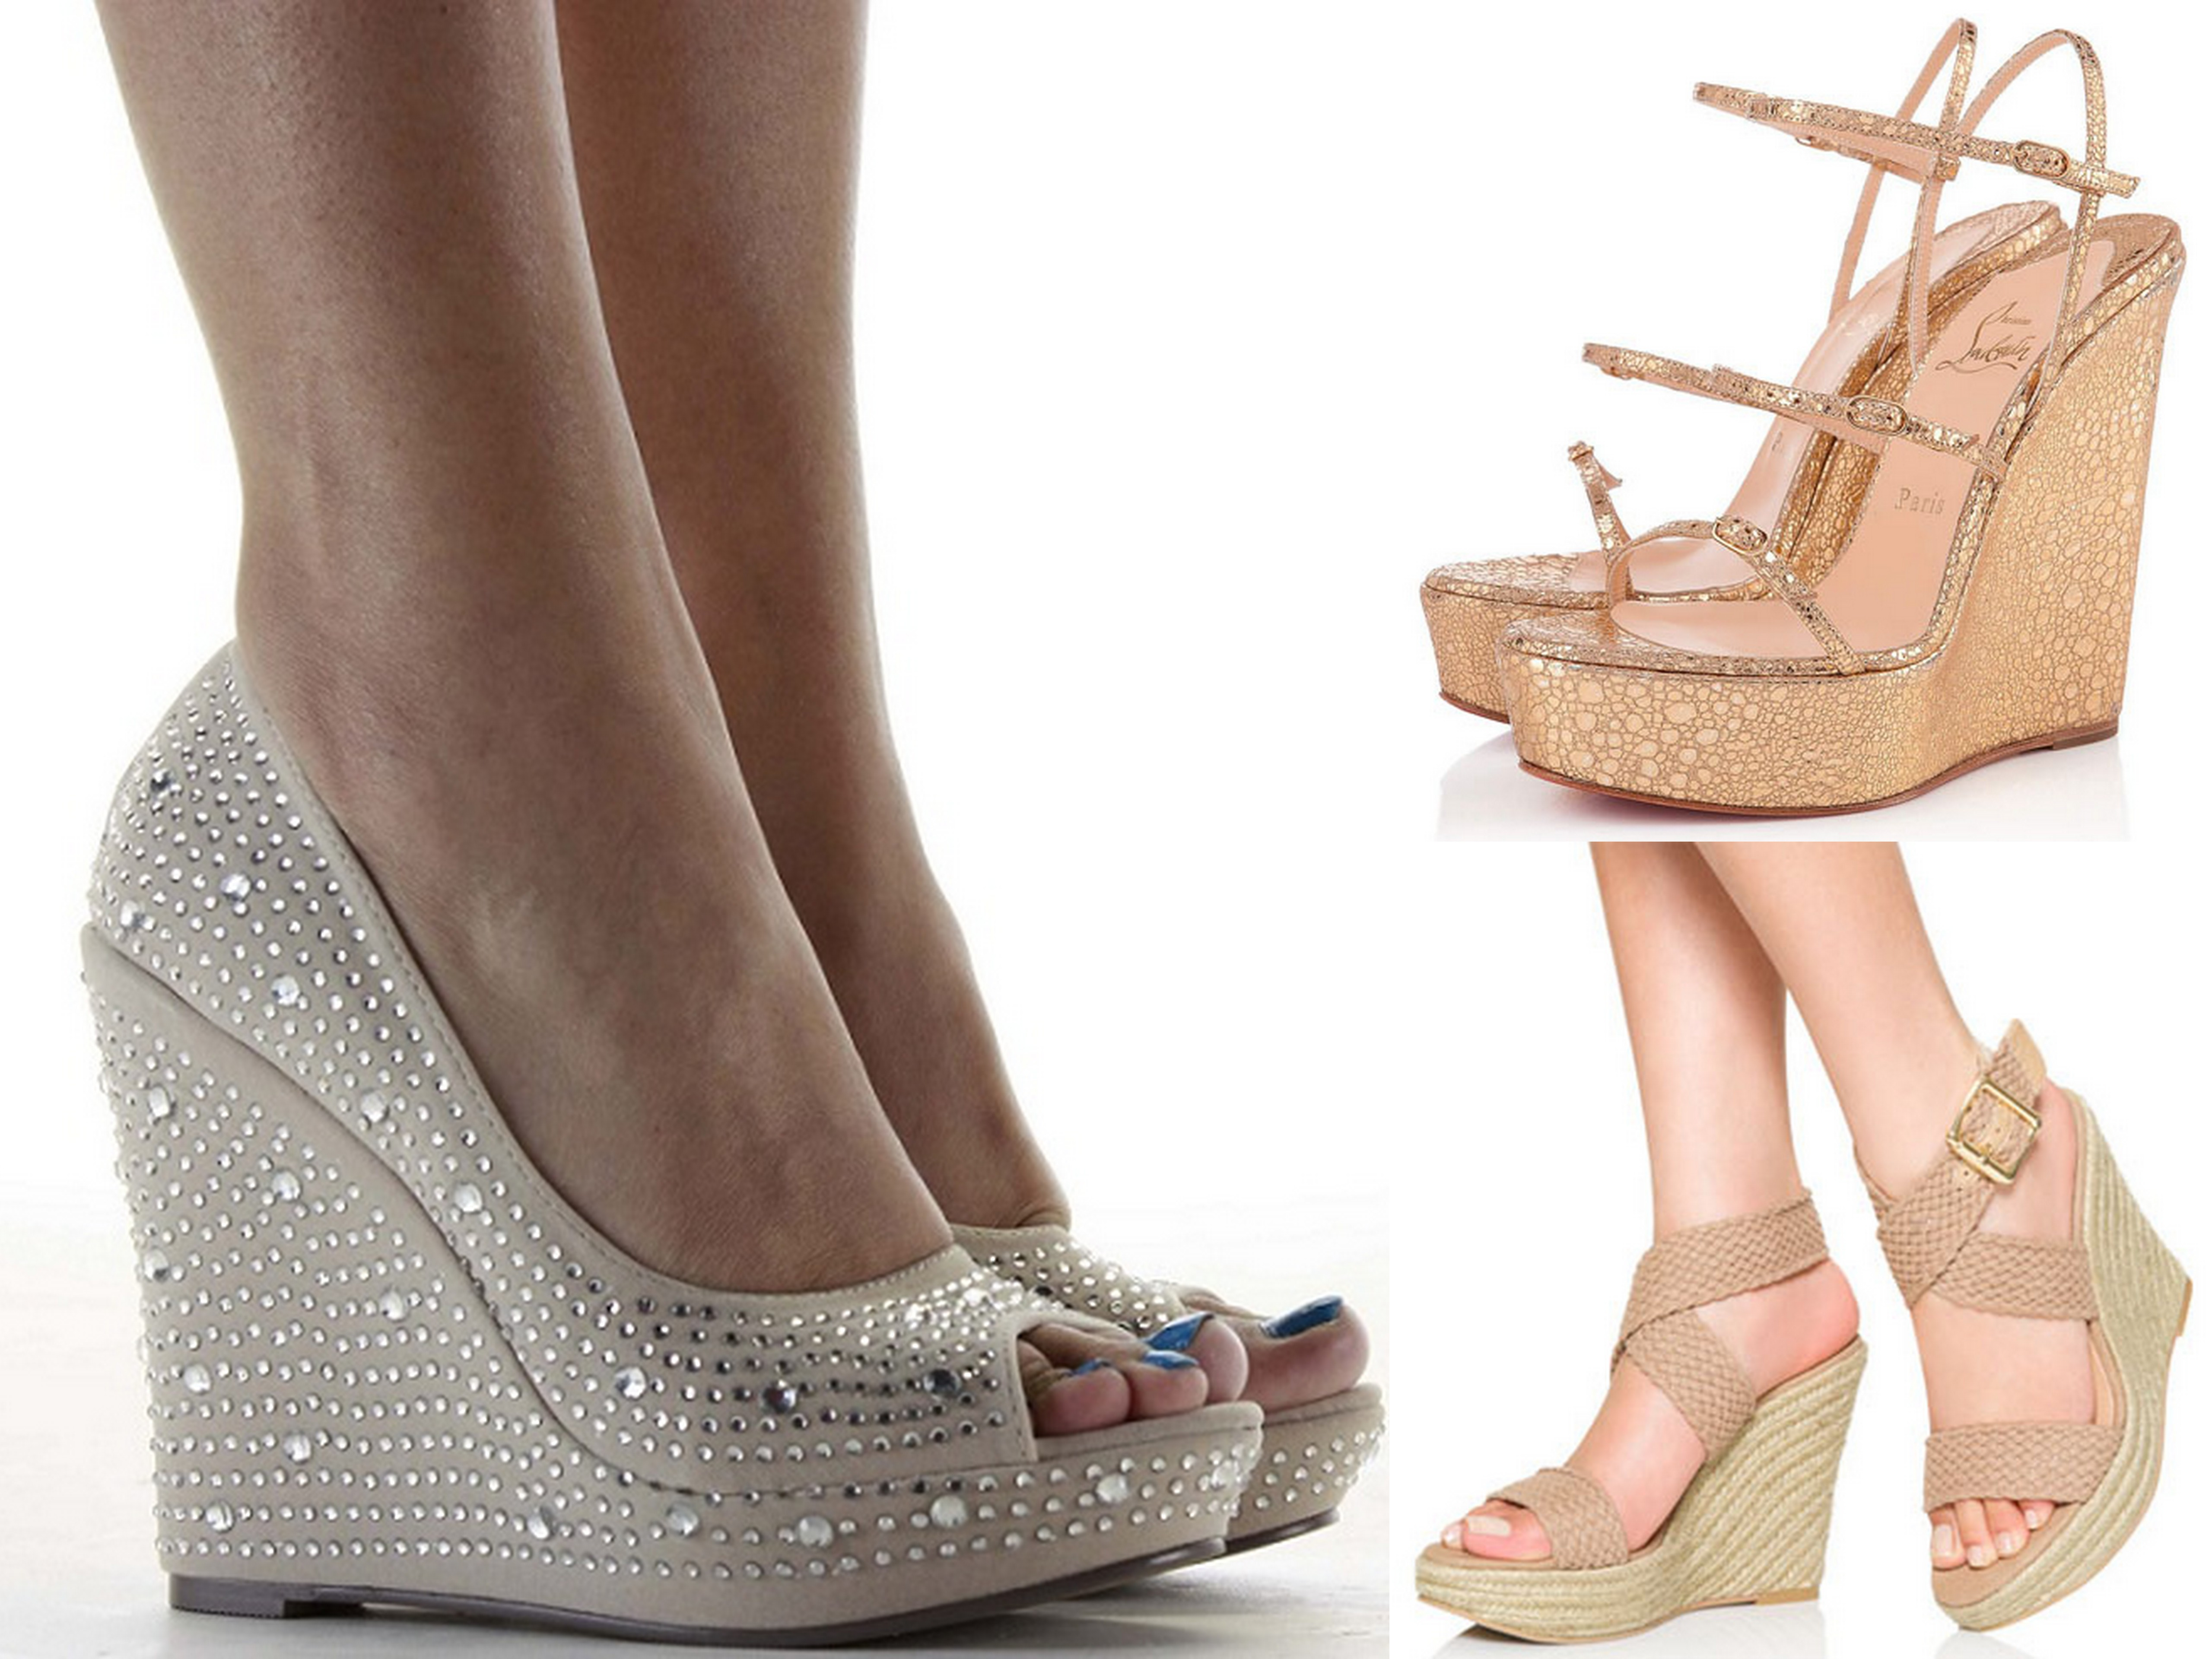 Trend: Wedges!